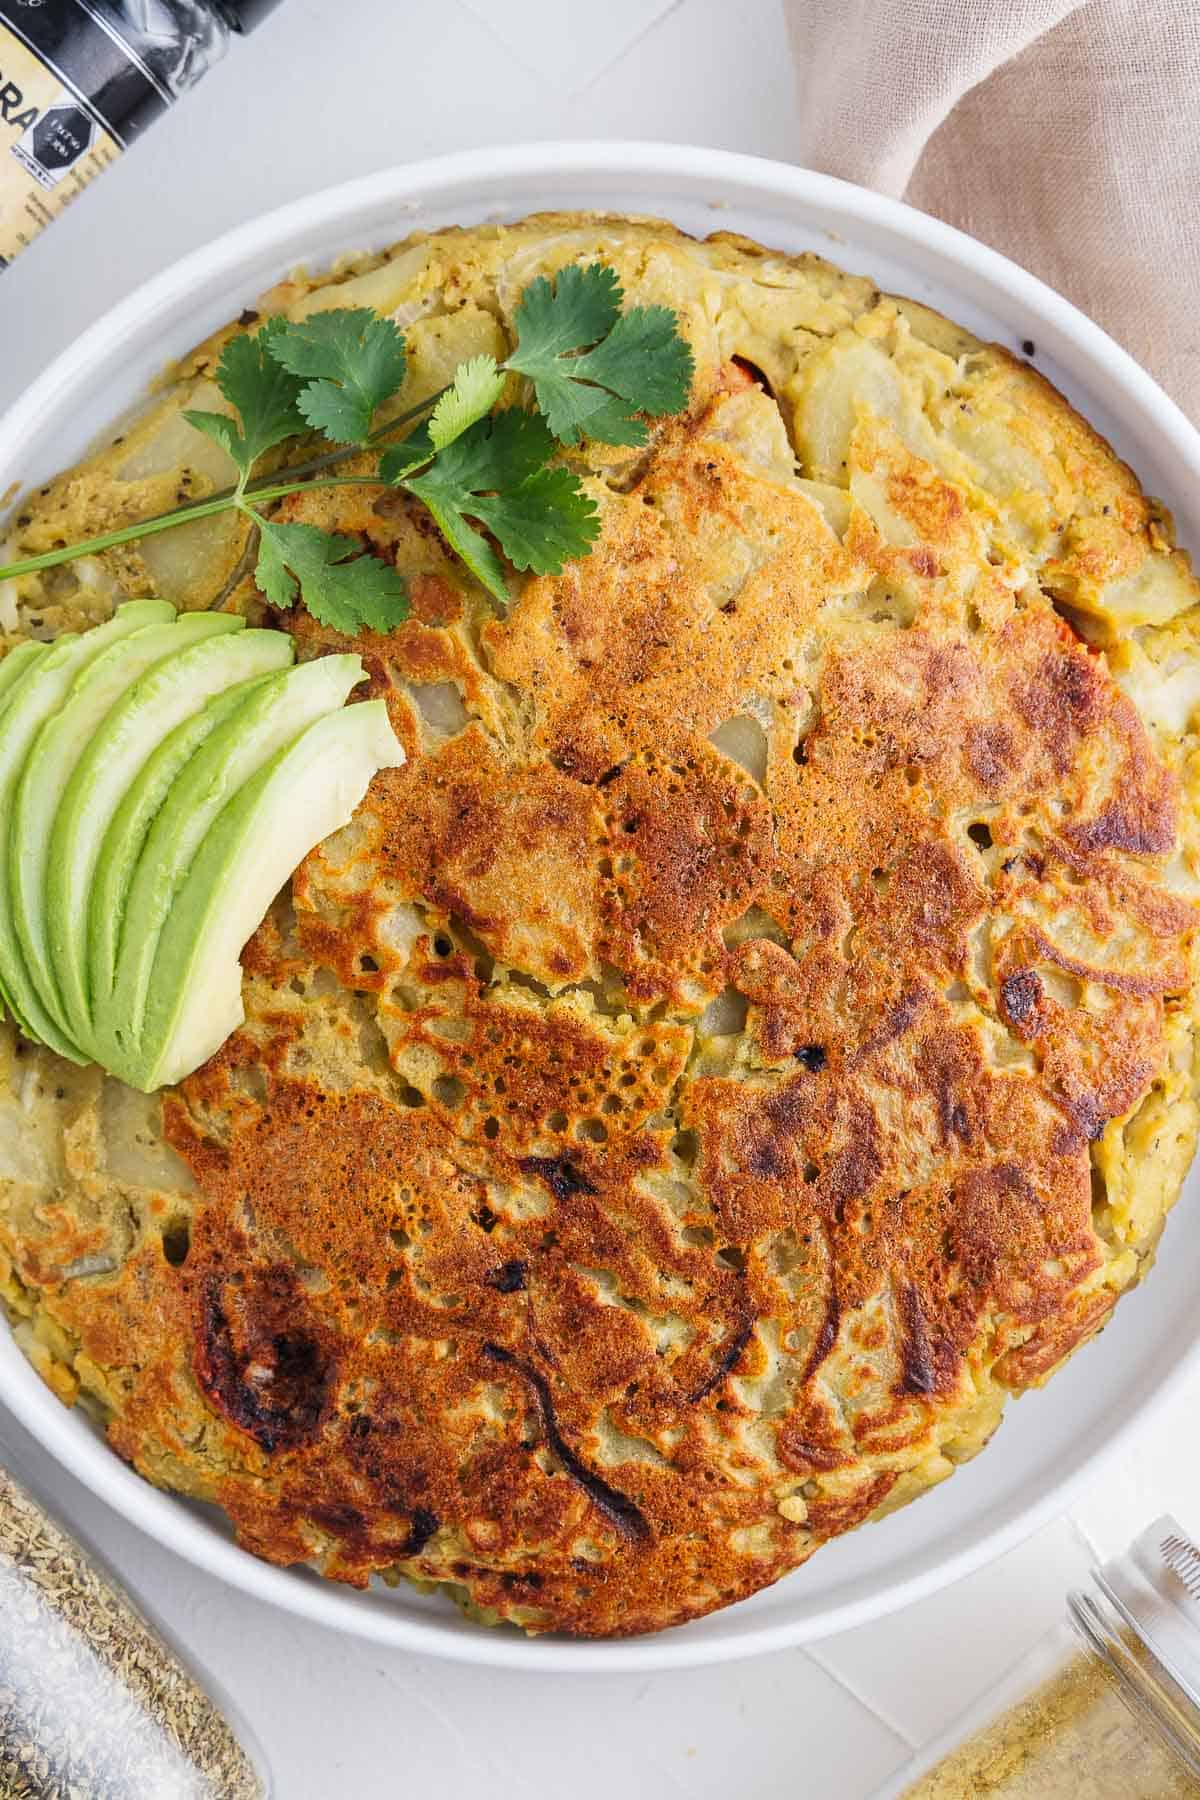 Vegan Spanish Omelette With a Fork